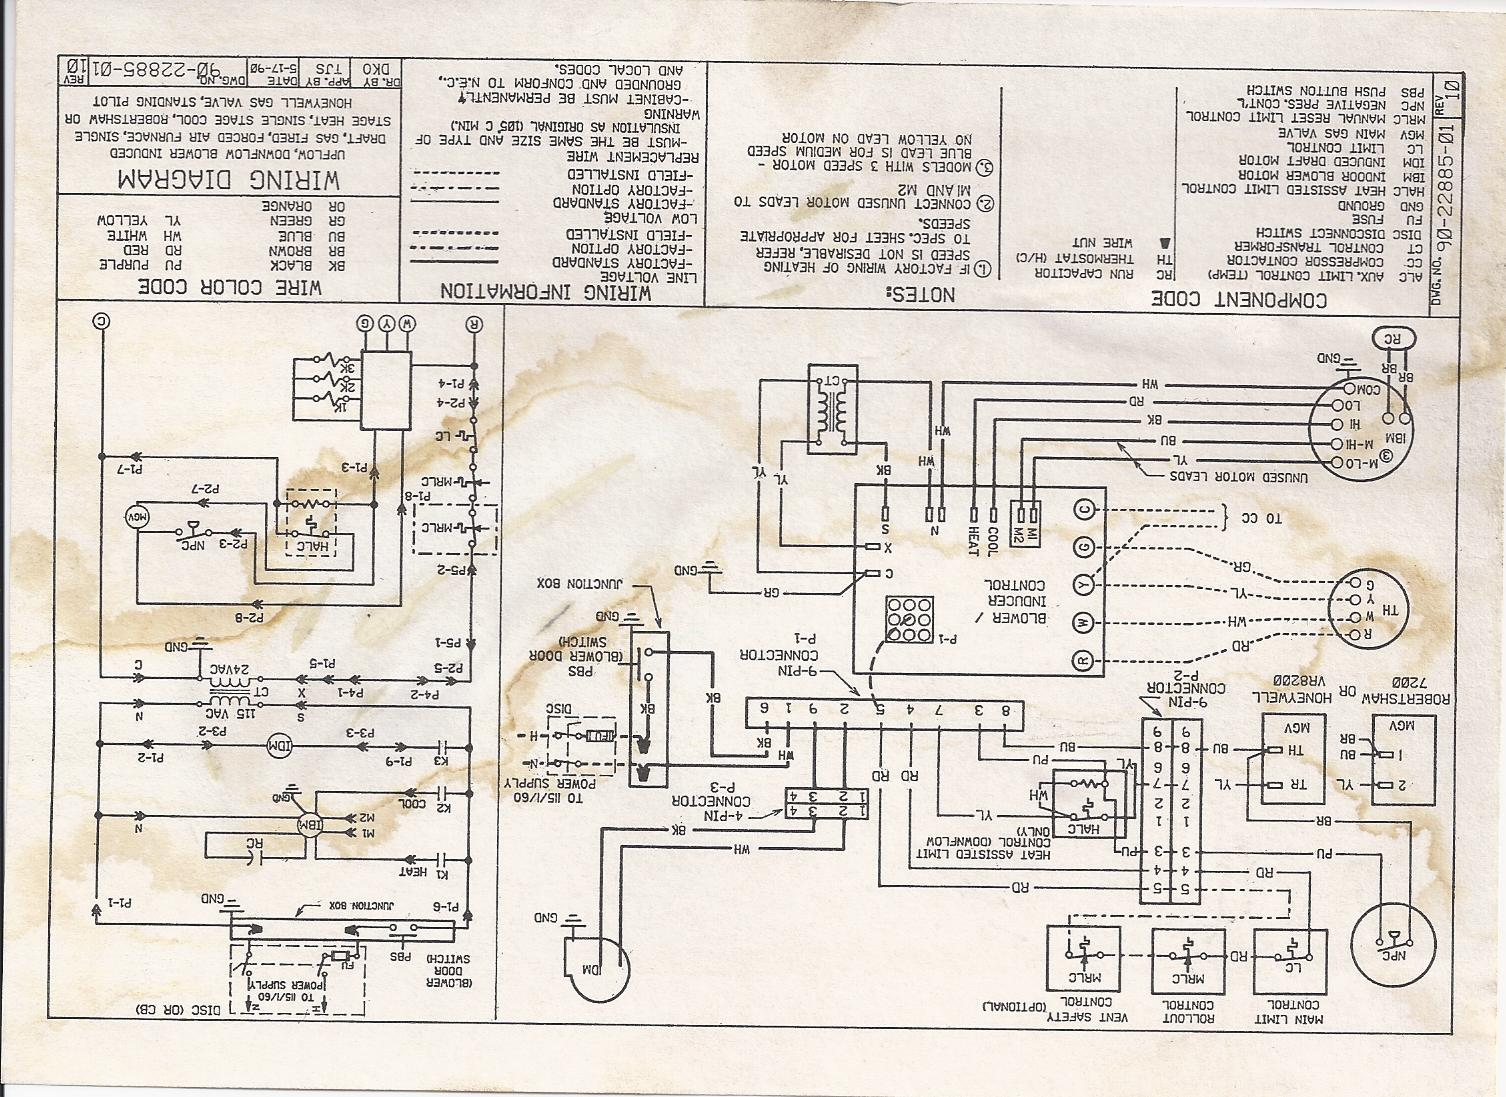 wiring diagrams hvac the wiring diagram ruud hvac wiring diagram ruud wiring diagrams for car or truck wiring